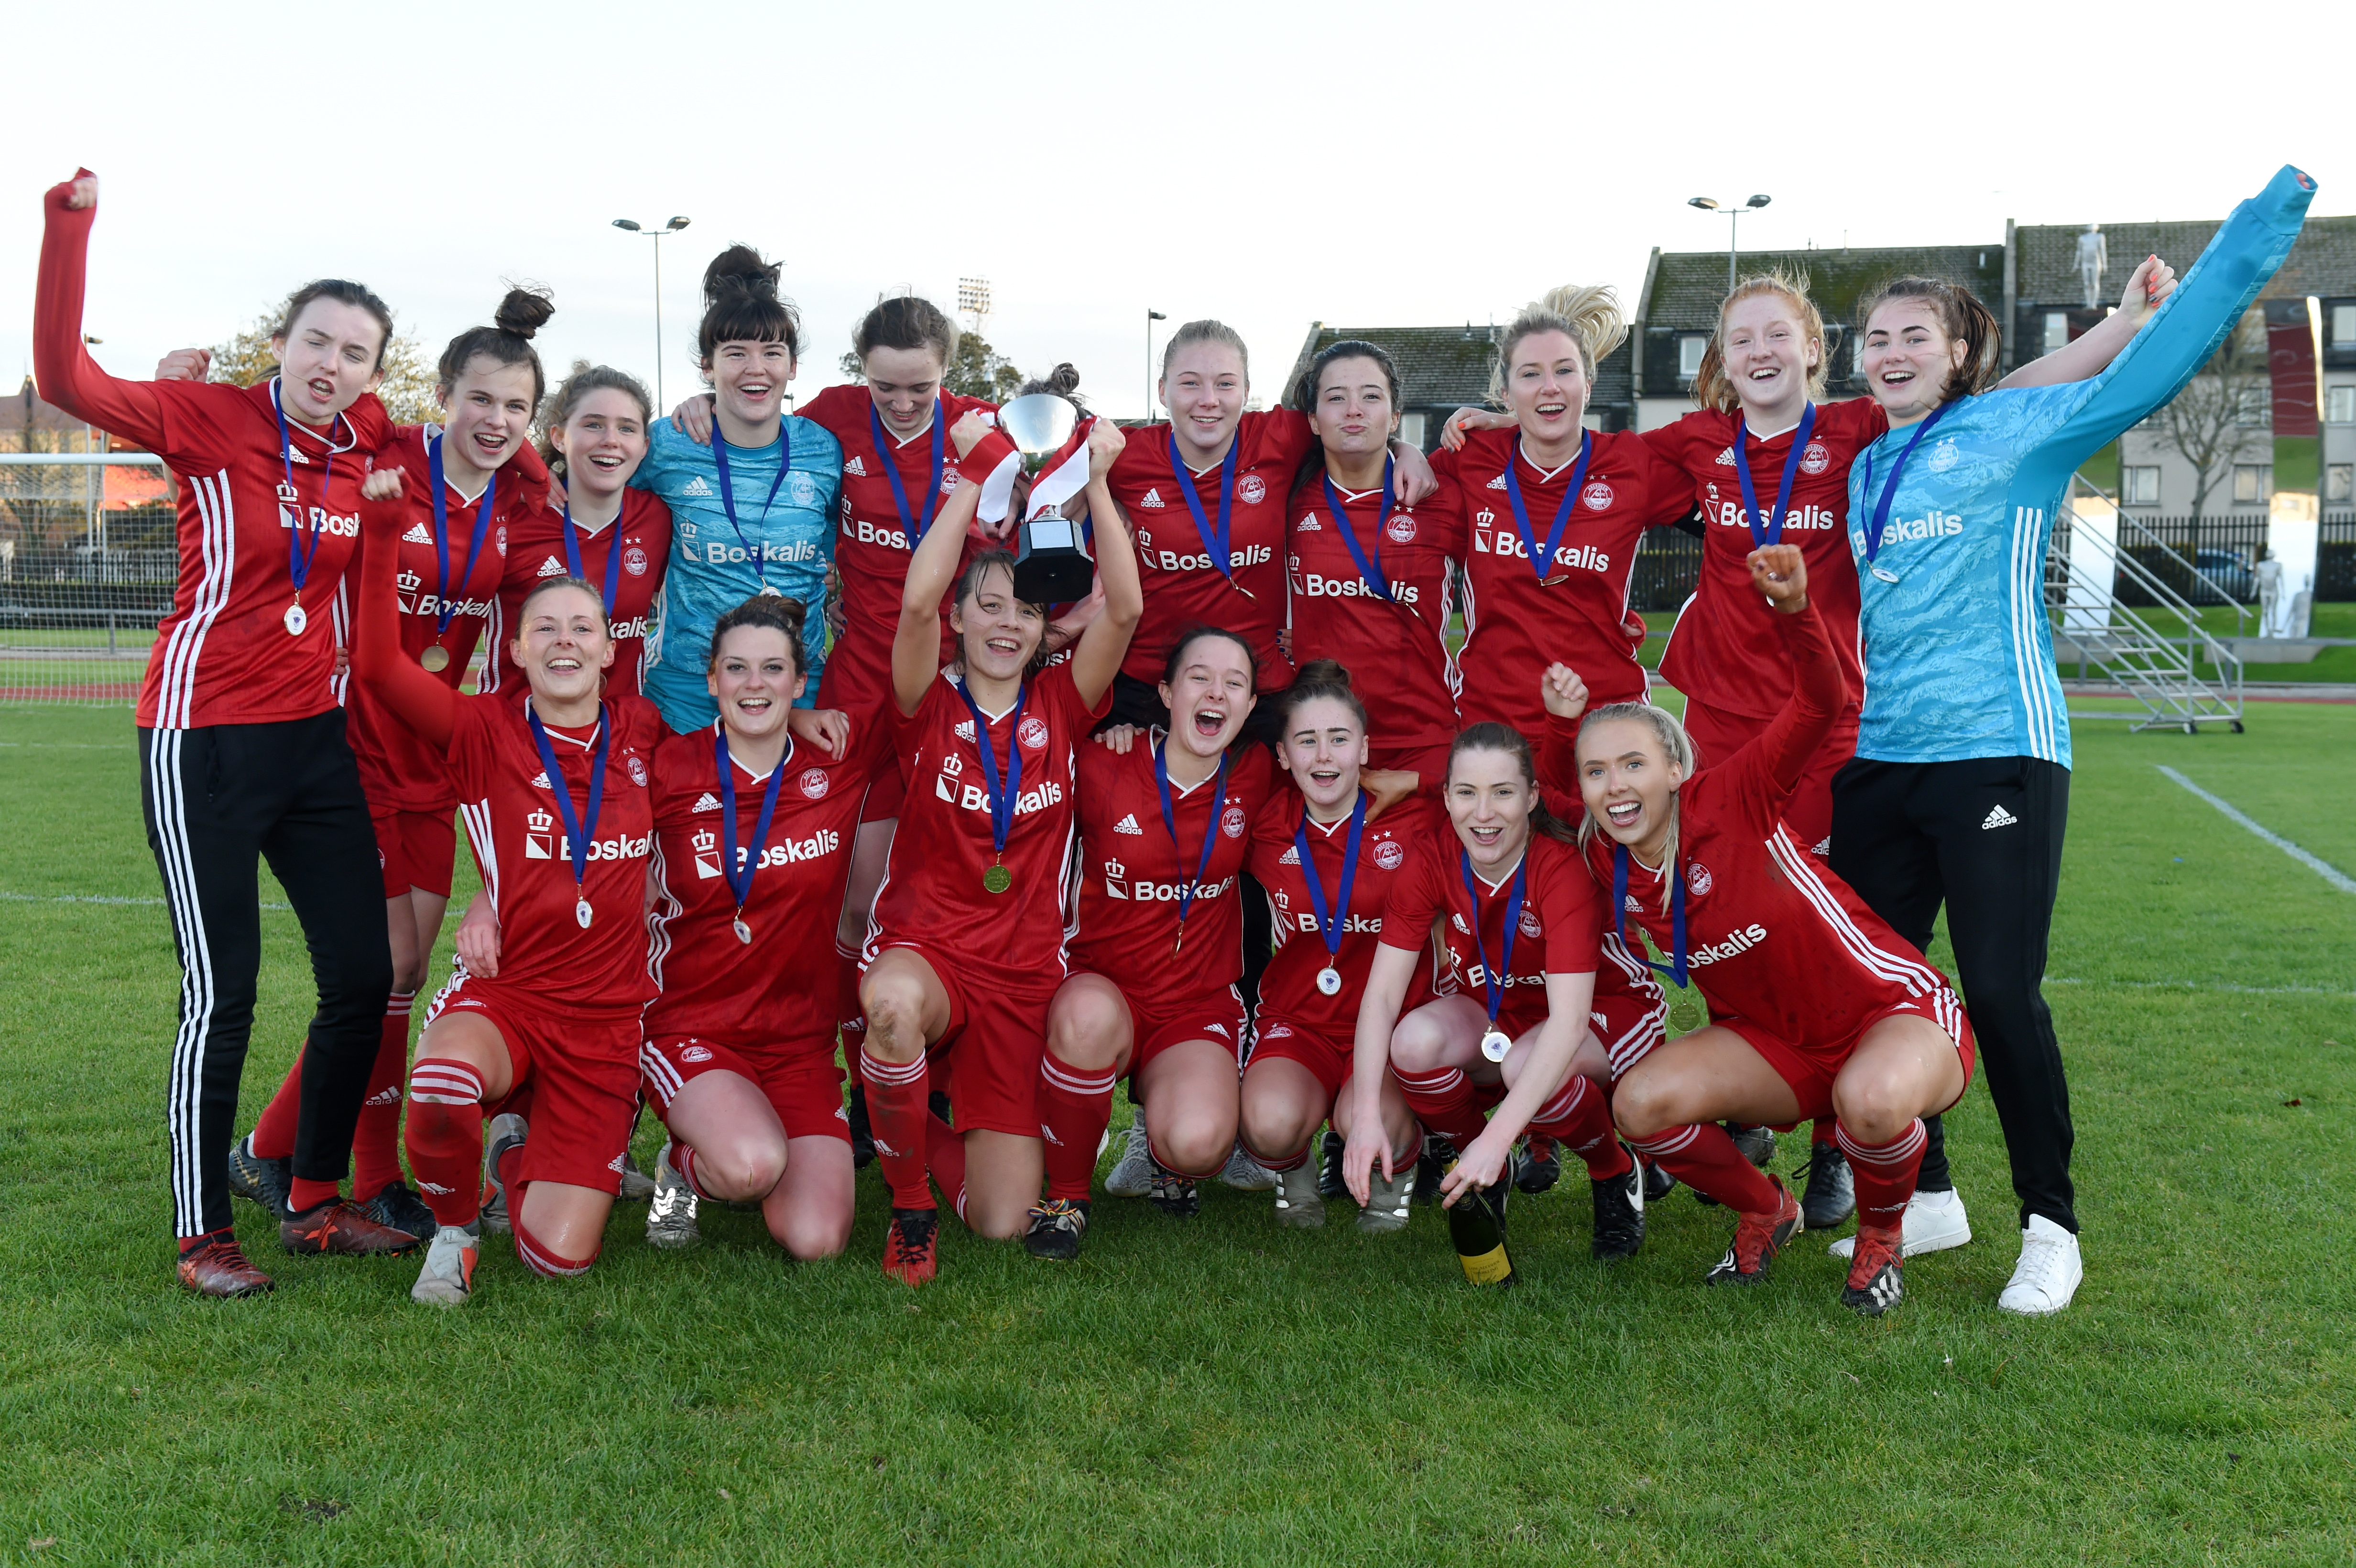 Aberdeen FC Women being presented with the SWFL Division One North trophy.